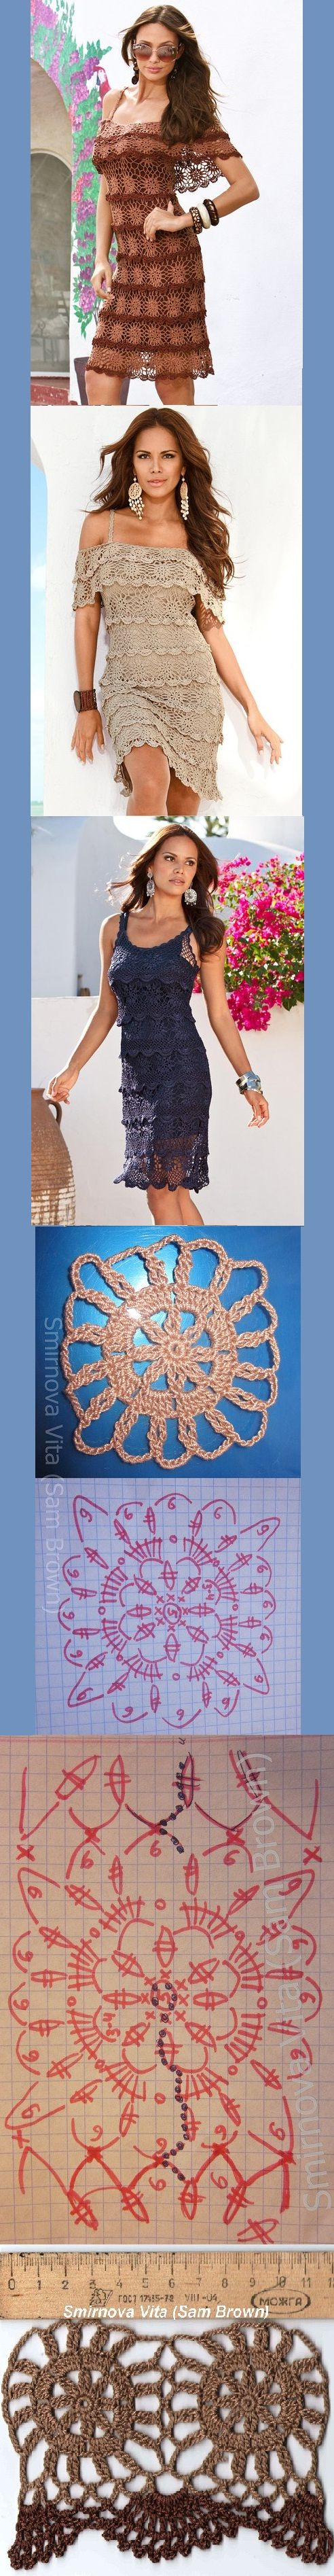 Boston's famous crochet dress - was only inspiration but here is a diagram to help... Another WIP on the way???